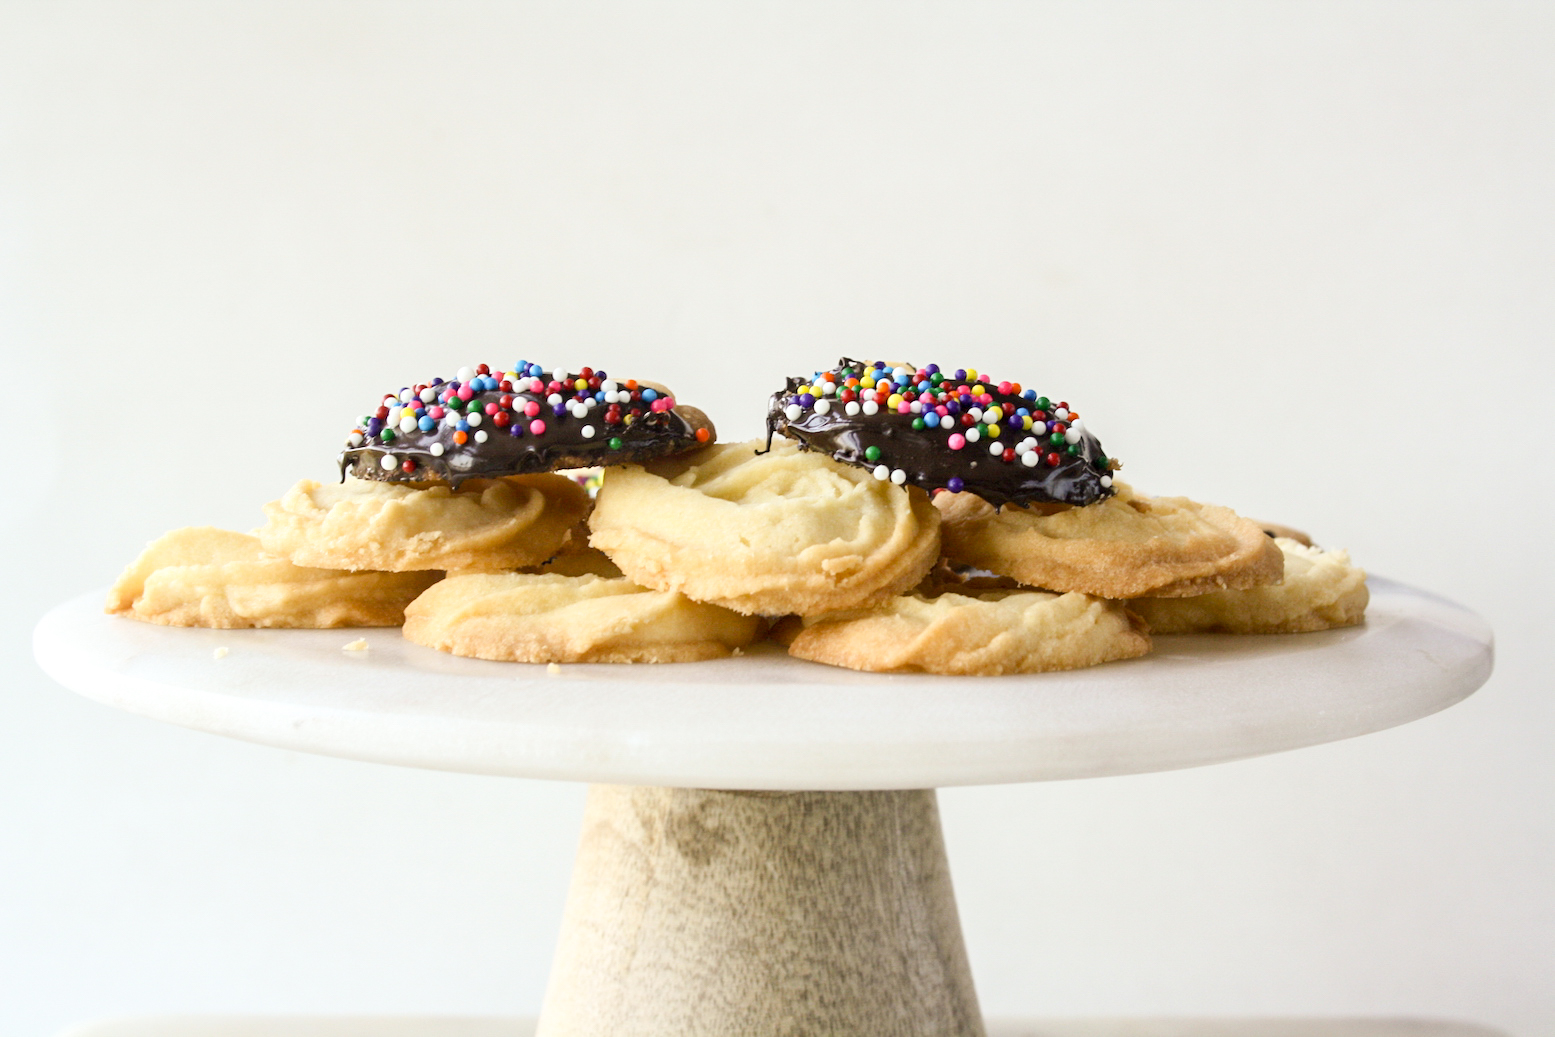 Crisp, buttery cookies dipped in melted chocolate and sprinkles